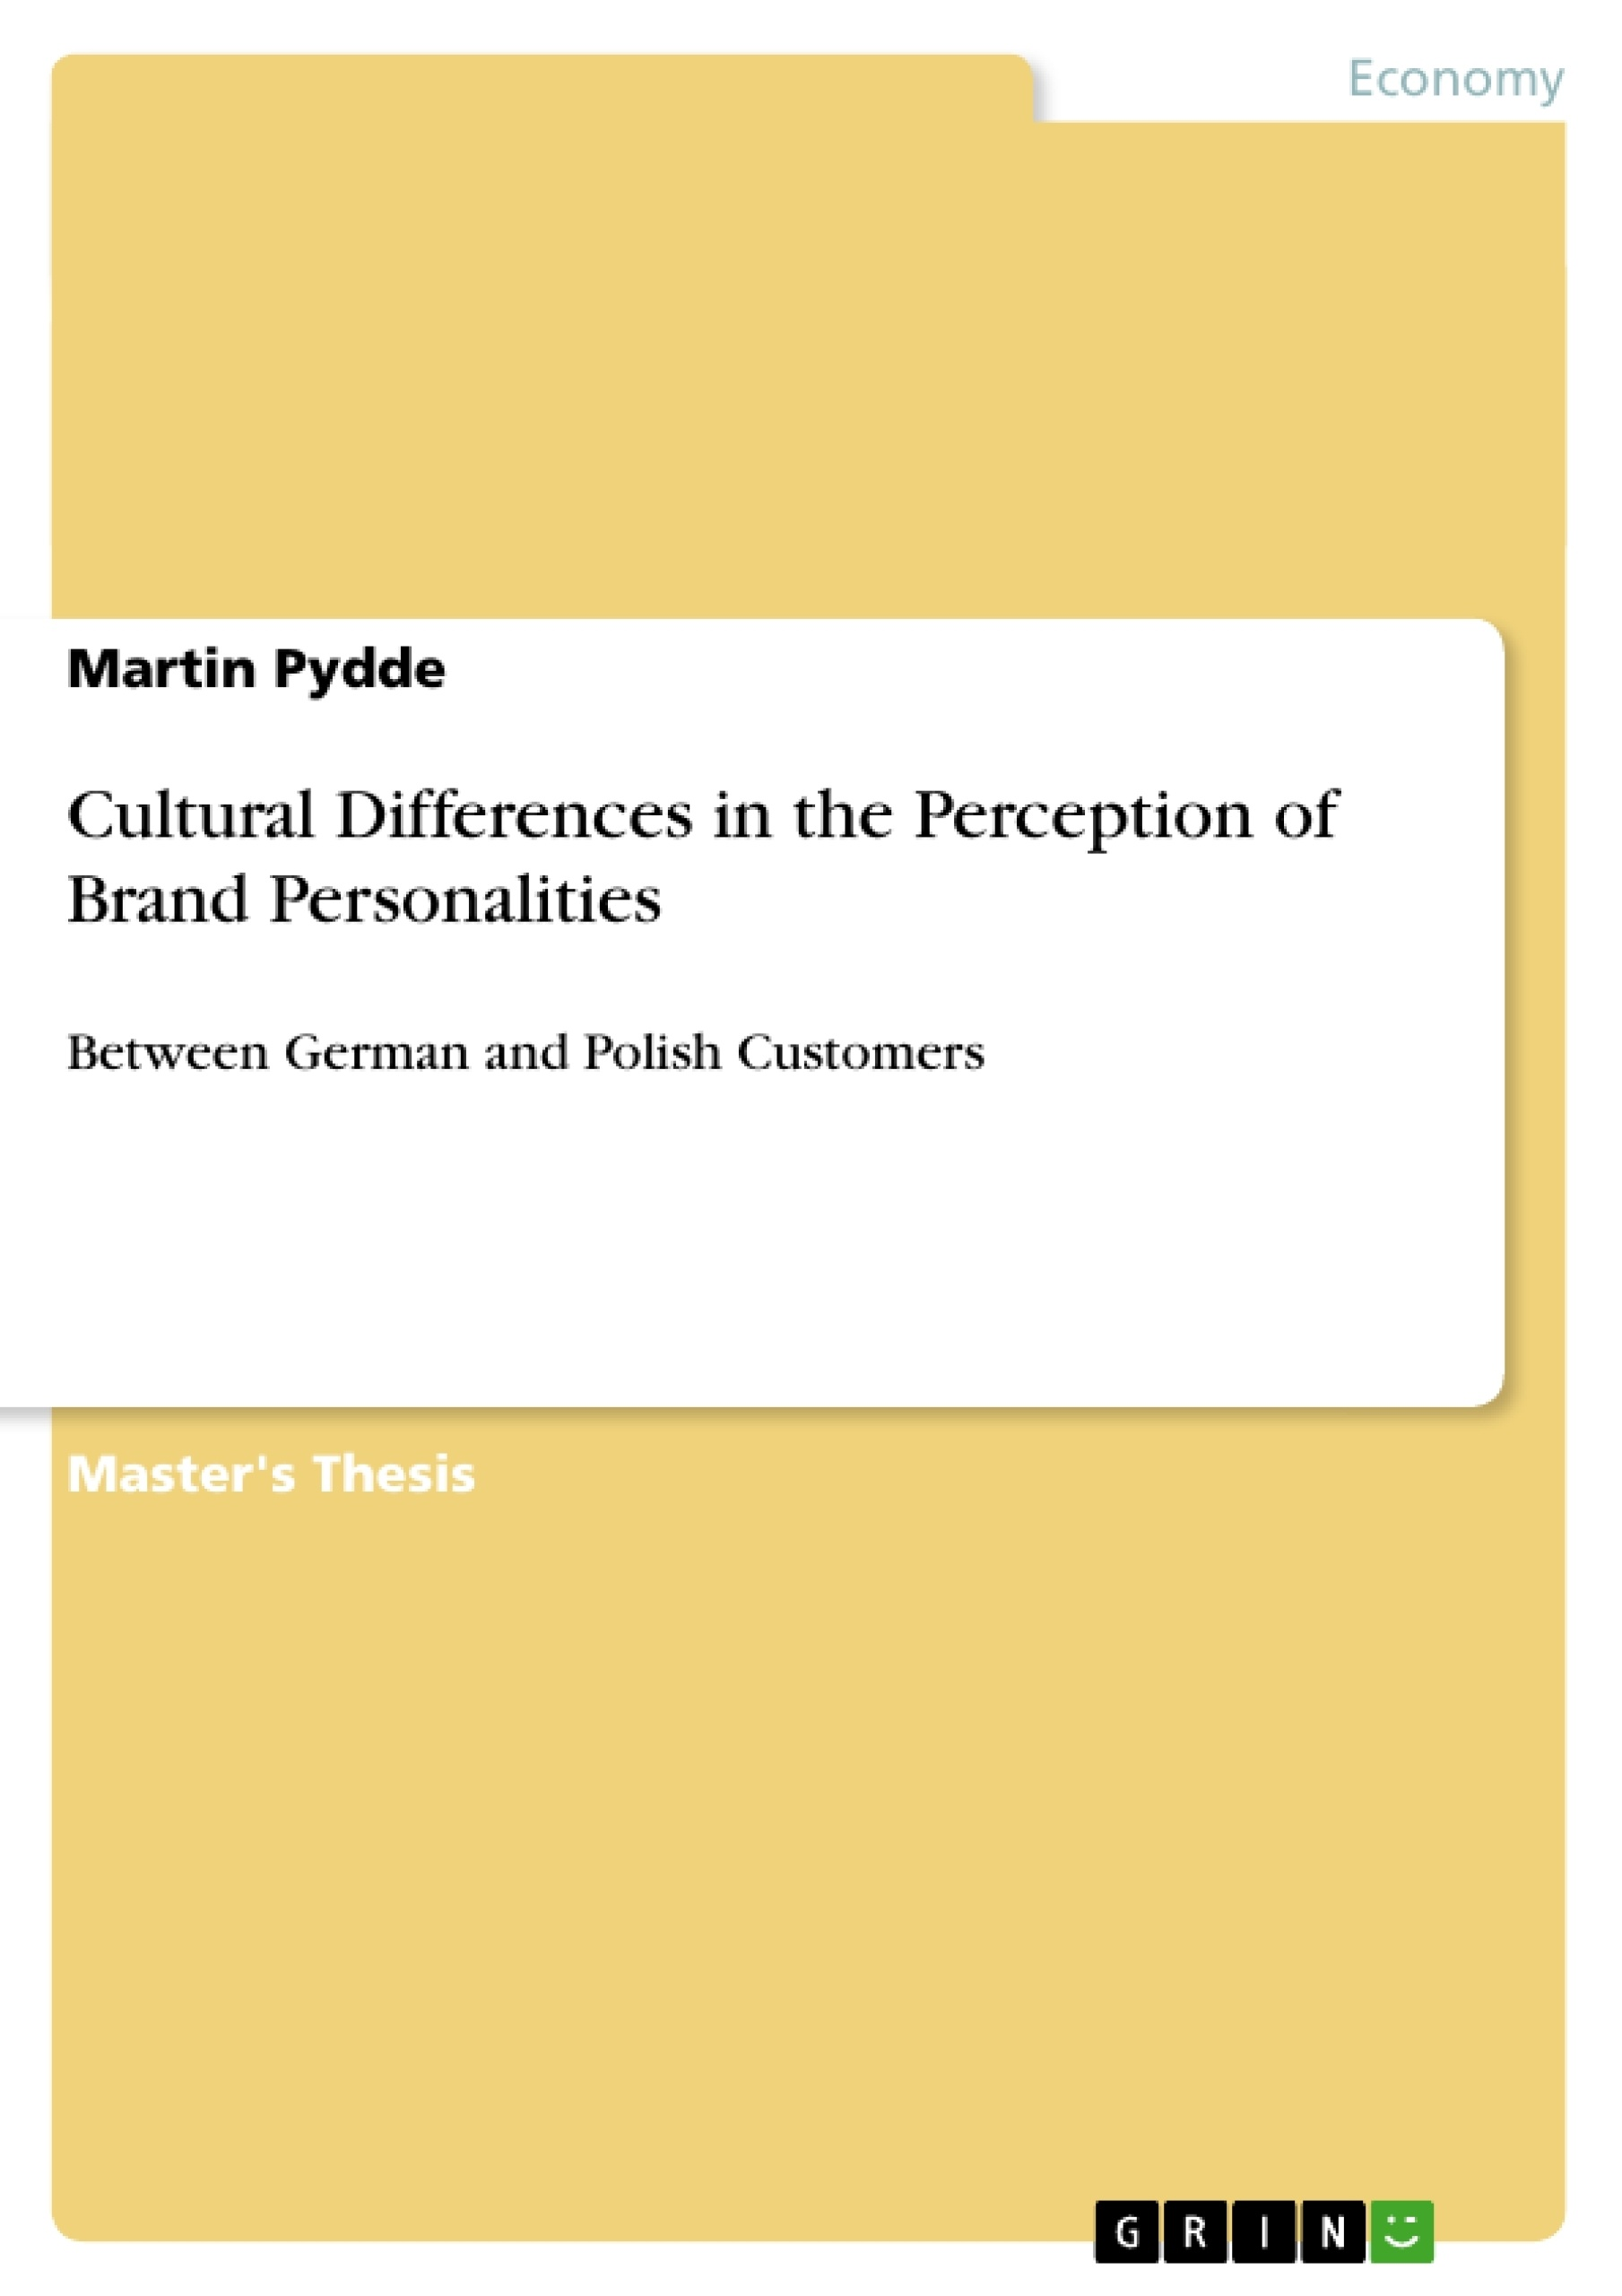 Thesis on brand perception